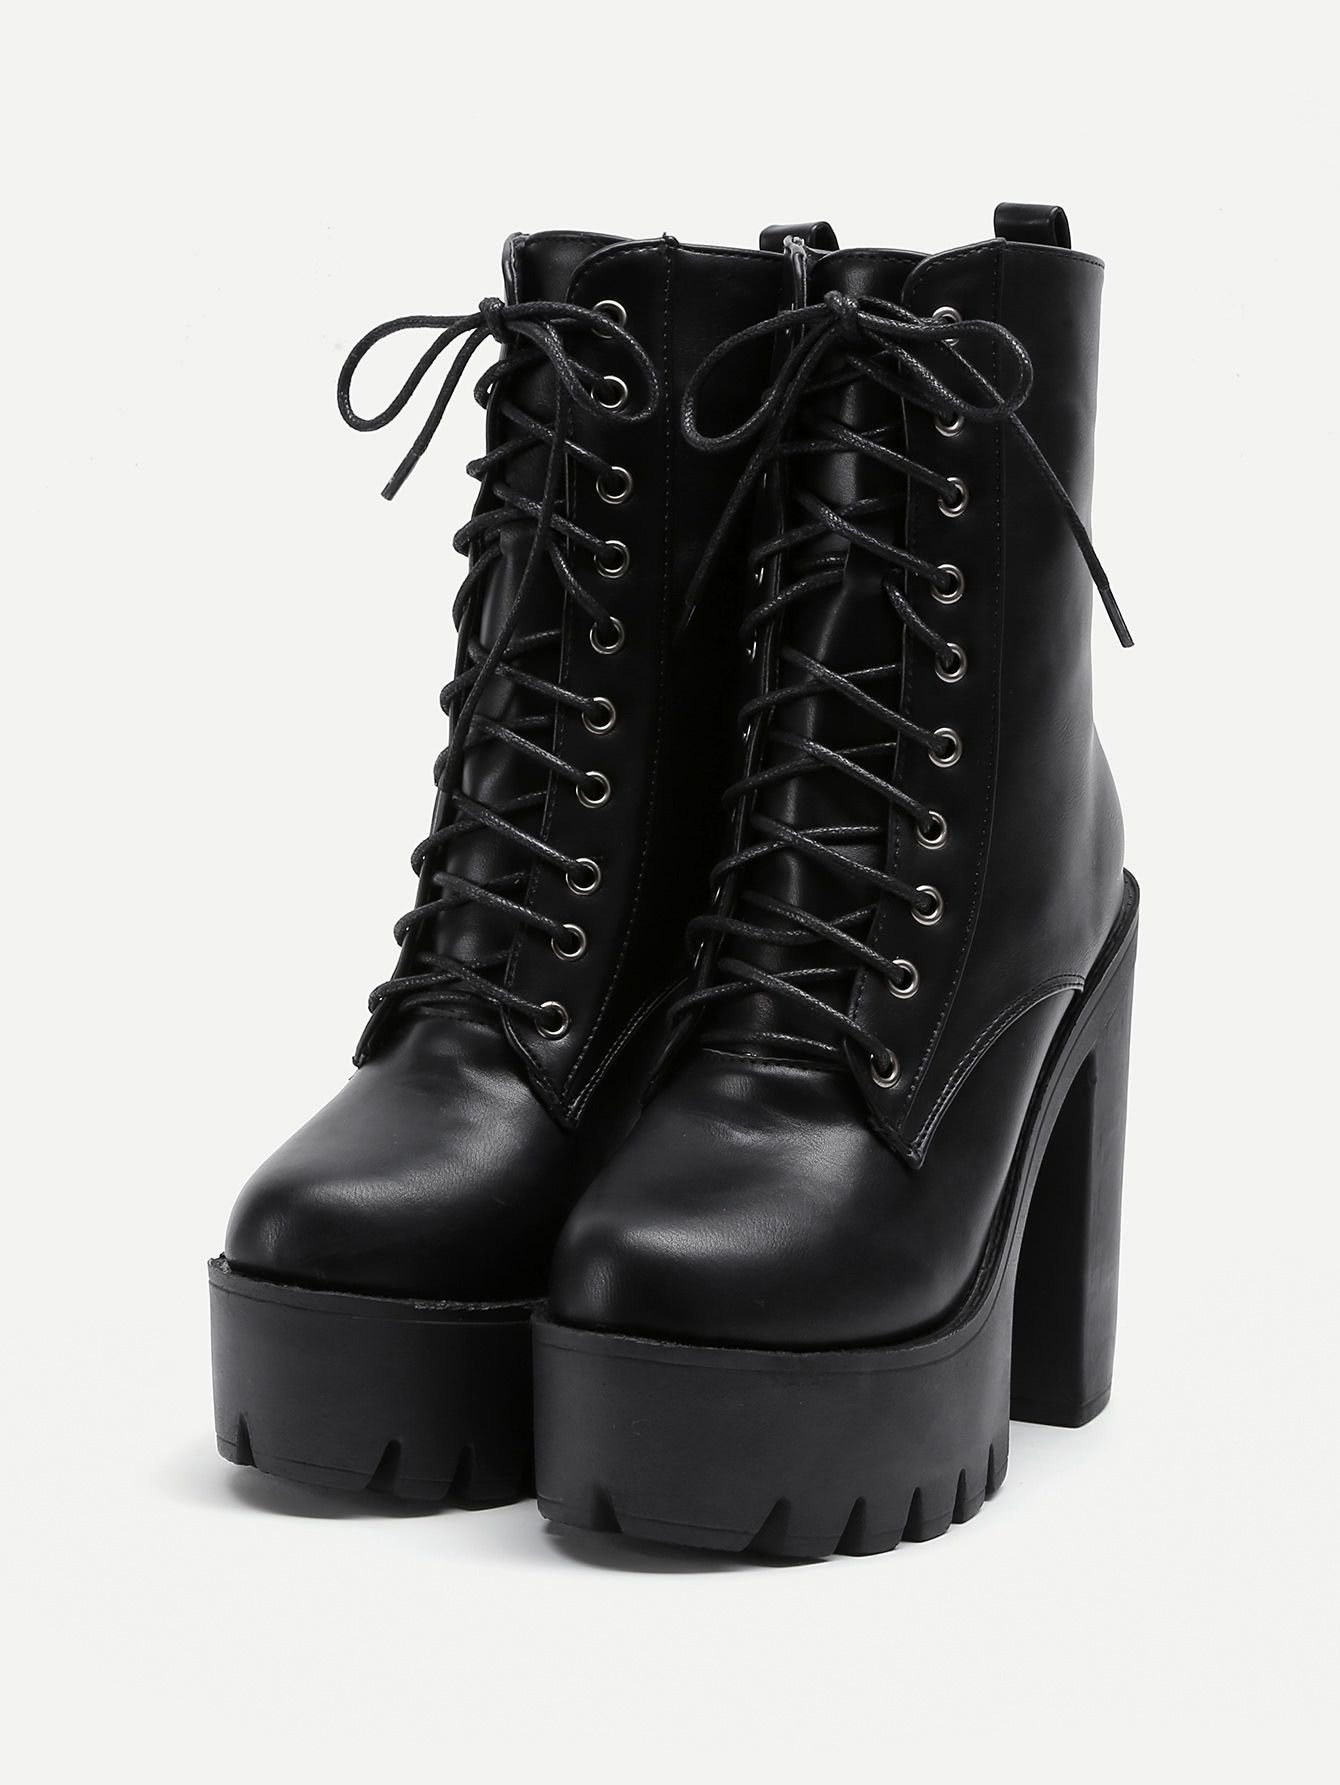 d4200c38d9 Platform Lace Up PU Heeled Boots -SheIn(Sheinside) | Shoes in 2019 ...